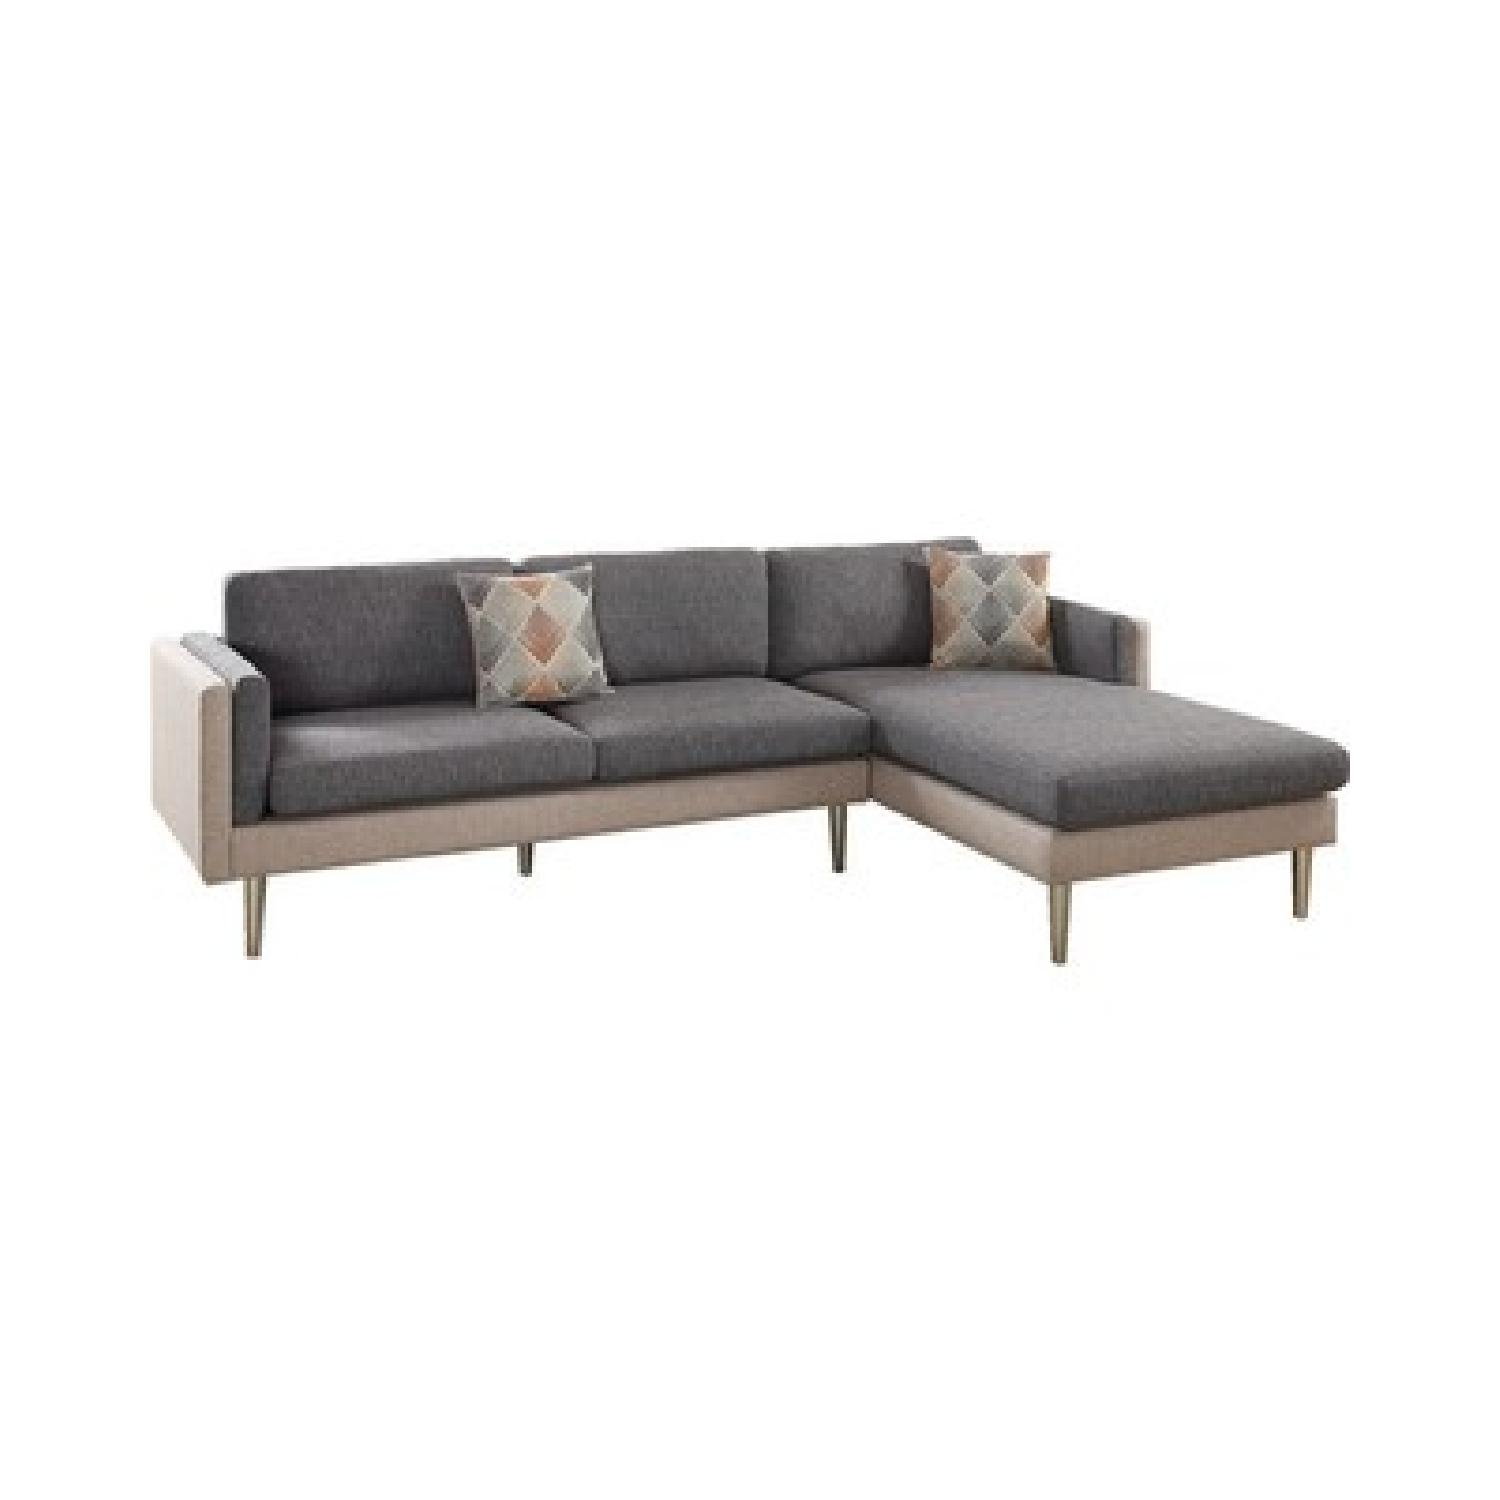 Ash Black 2 Piece Reversible Chaise Sectional Sofa ...